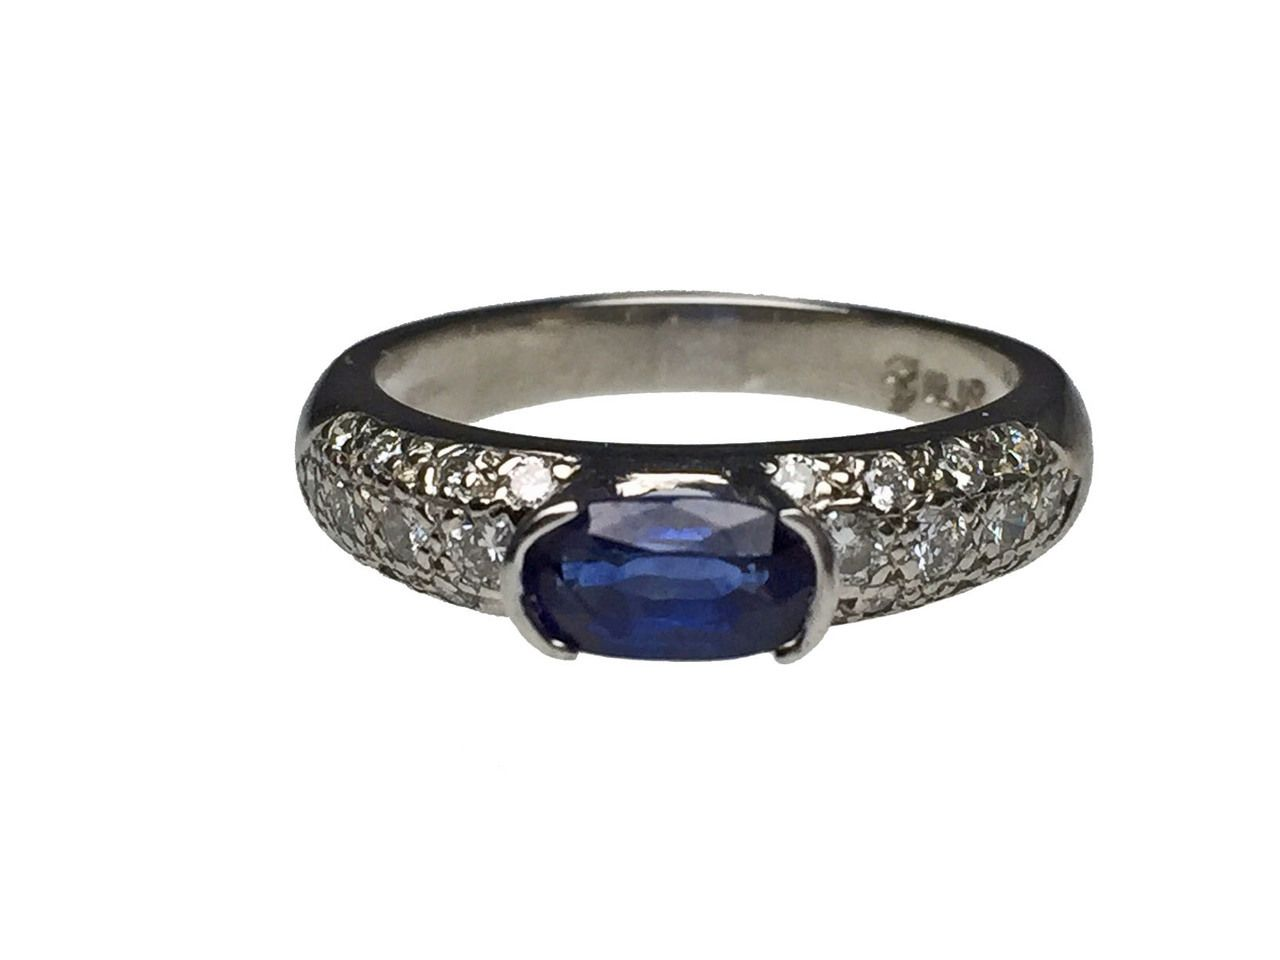 8f6fbb891 Lippa's Estate and Fine Jewelry - Platinum Oval Sapphire and Diamond Ring,  $1,150.00 (http